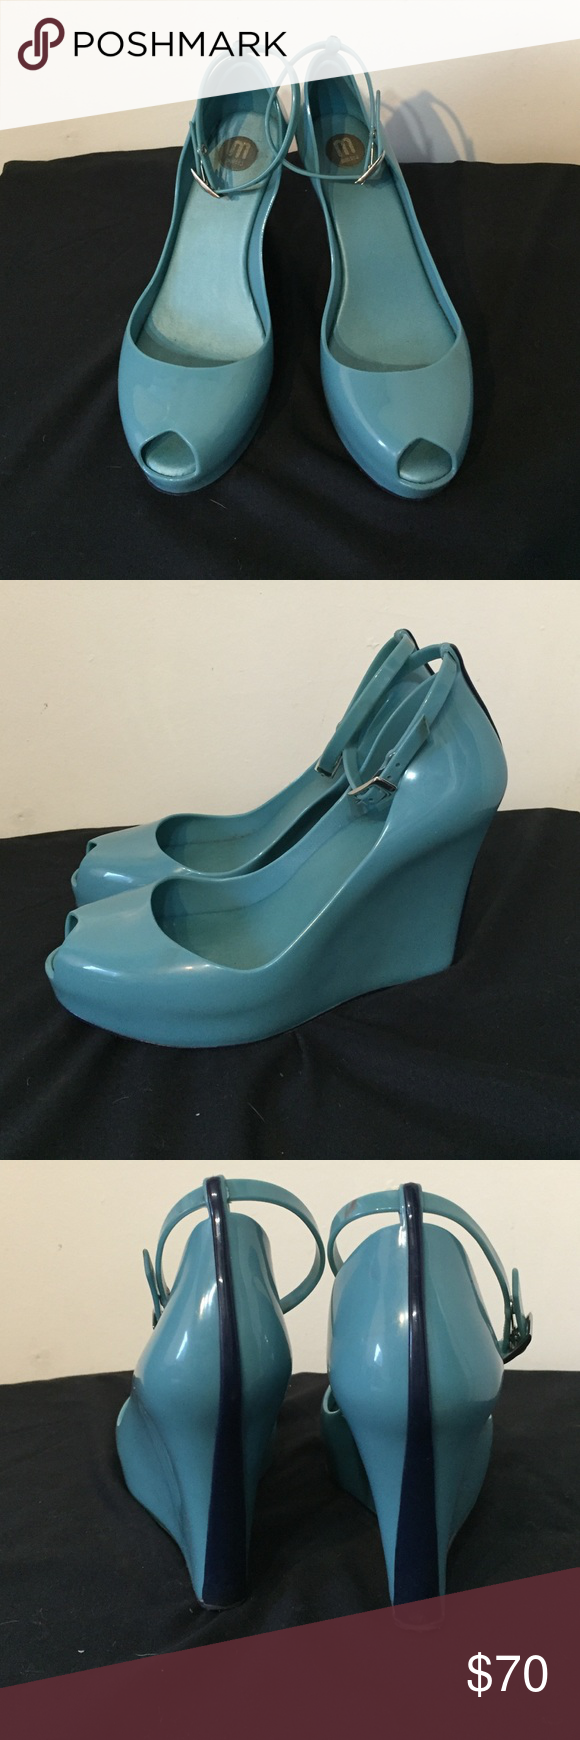 Melissa blue strap peep toe wedges 8 Wedges are in good condition. They have some scuffs. Melissa Shoes Wedges